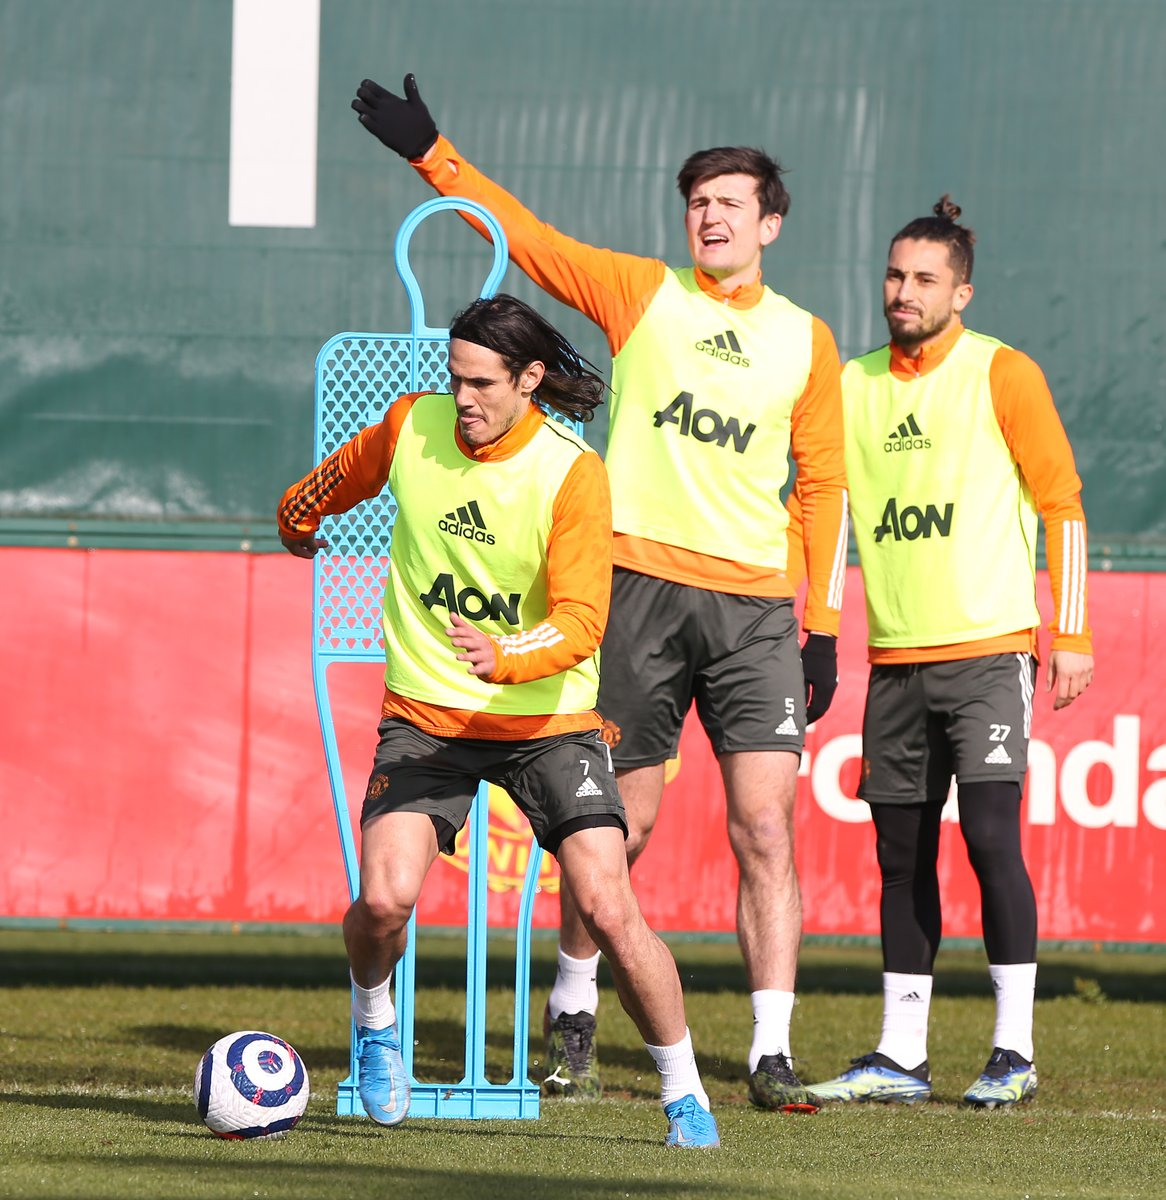 The players prepare for a visit to the Palace. #MUFC #GGMU